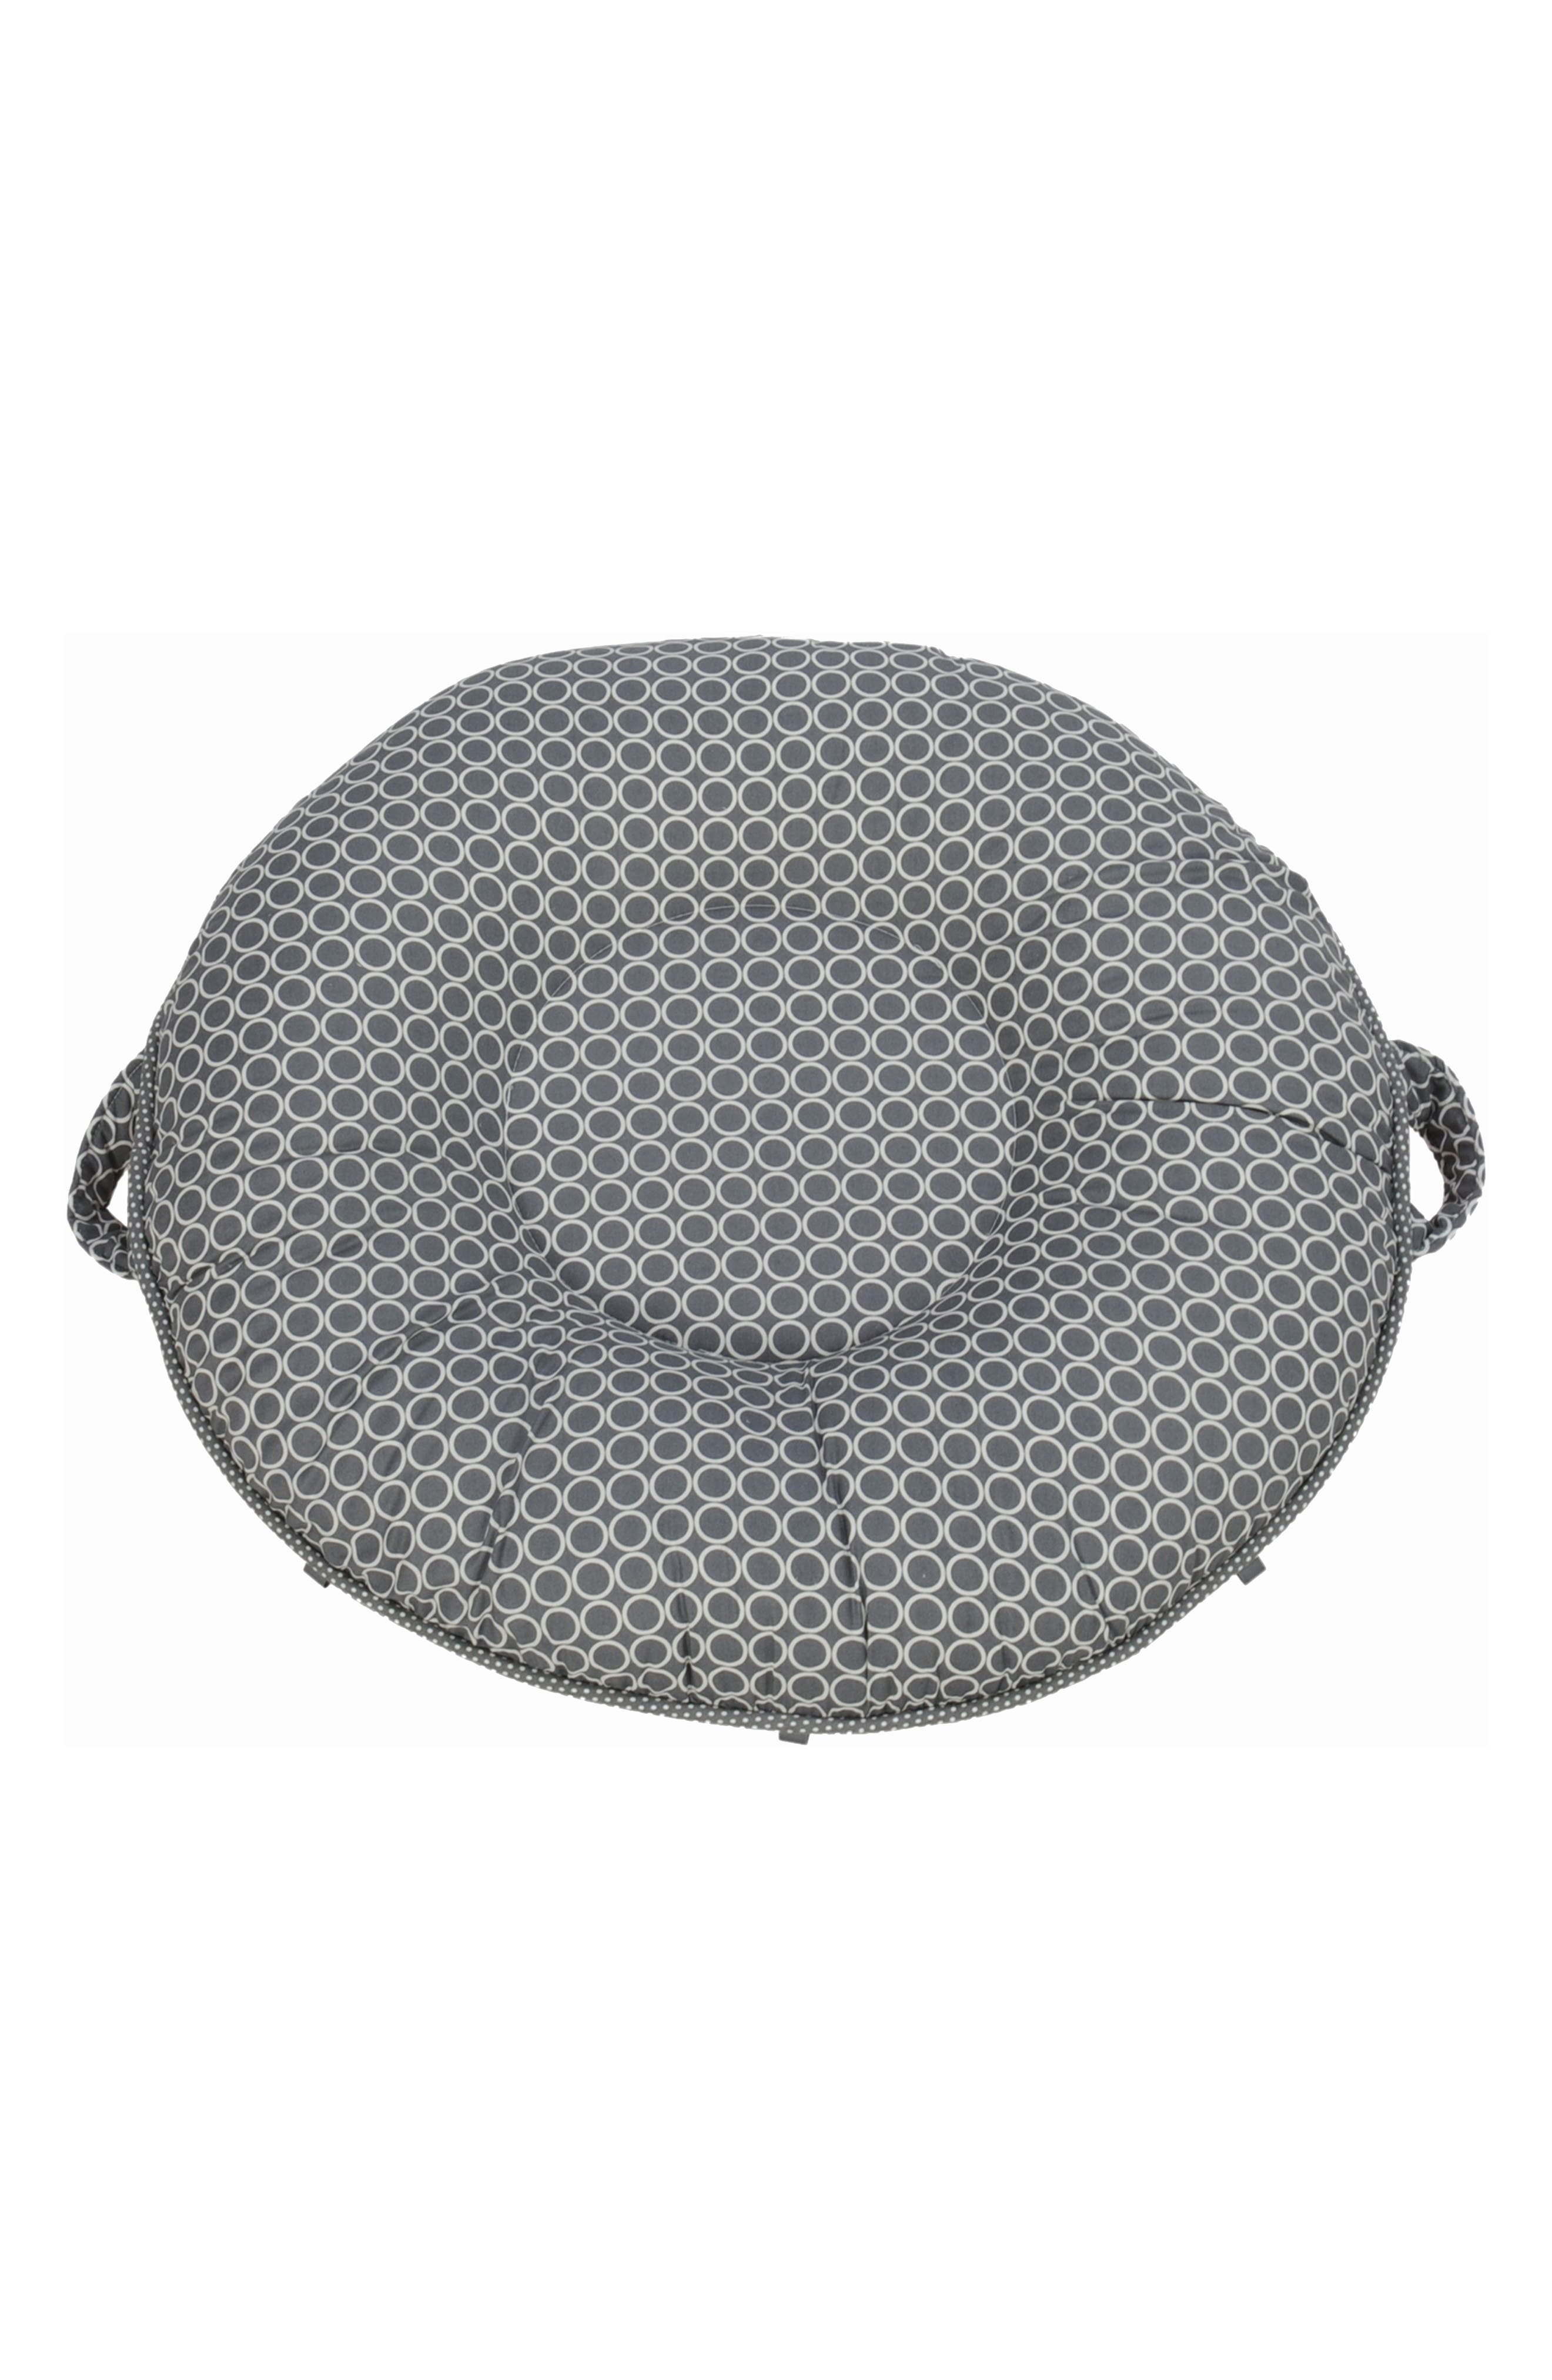 Majestic Luxe Portable Floor Pillow,                             Main thumbnail 1, color,                             Gray